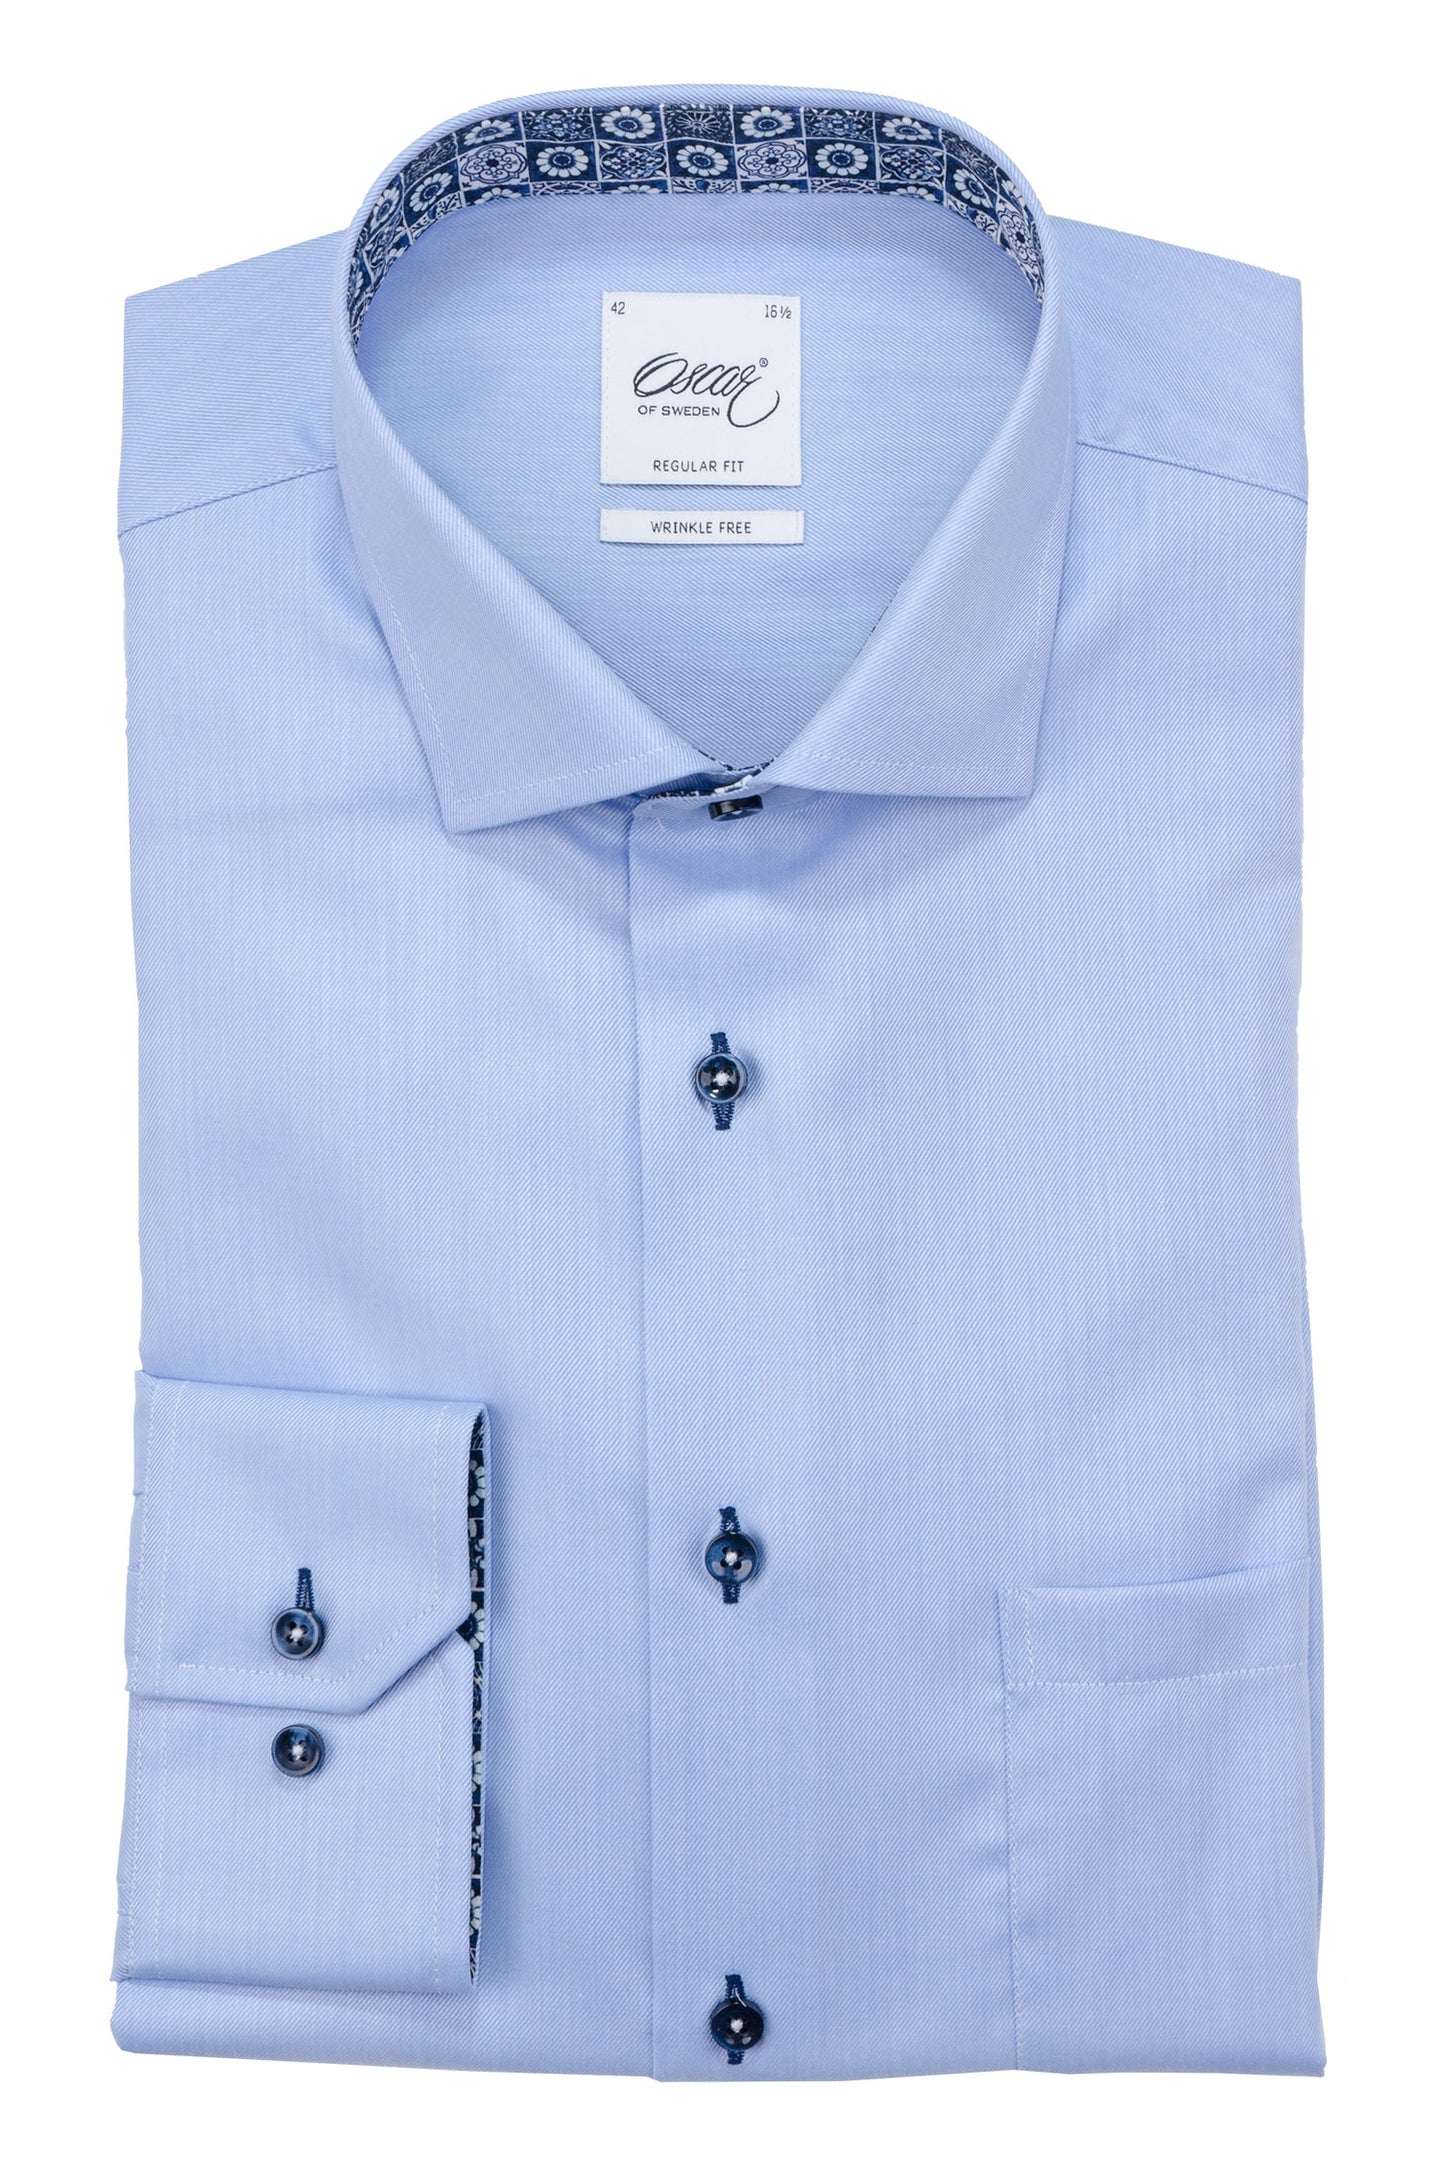 Light blue regular fit shirt with navy contrast details